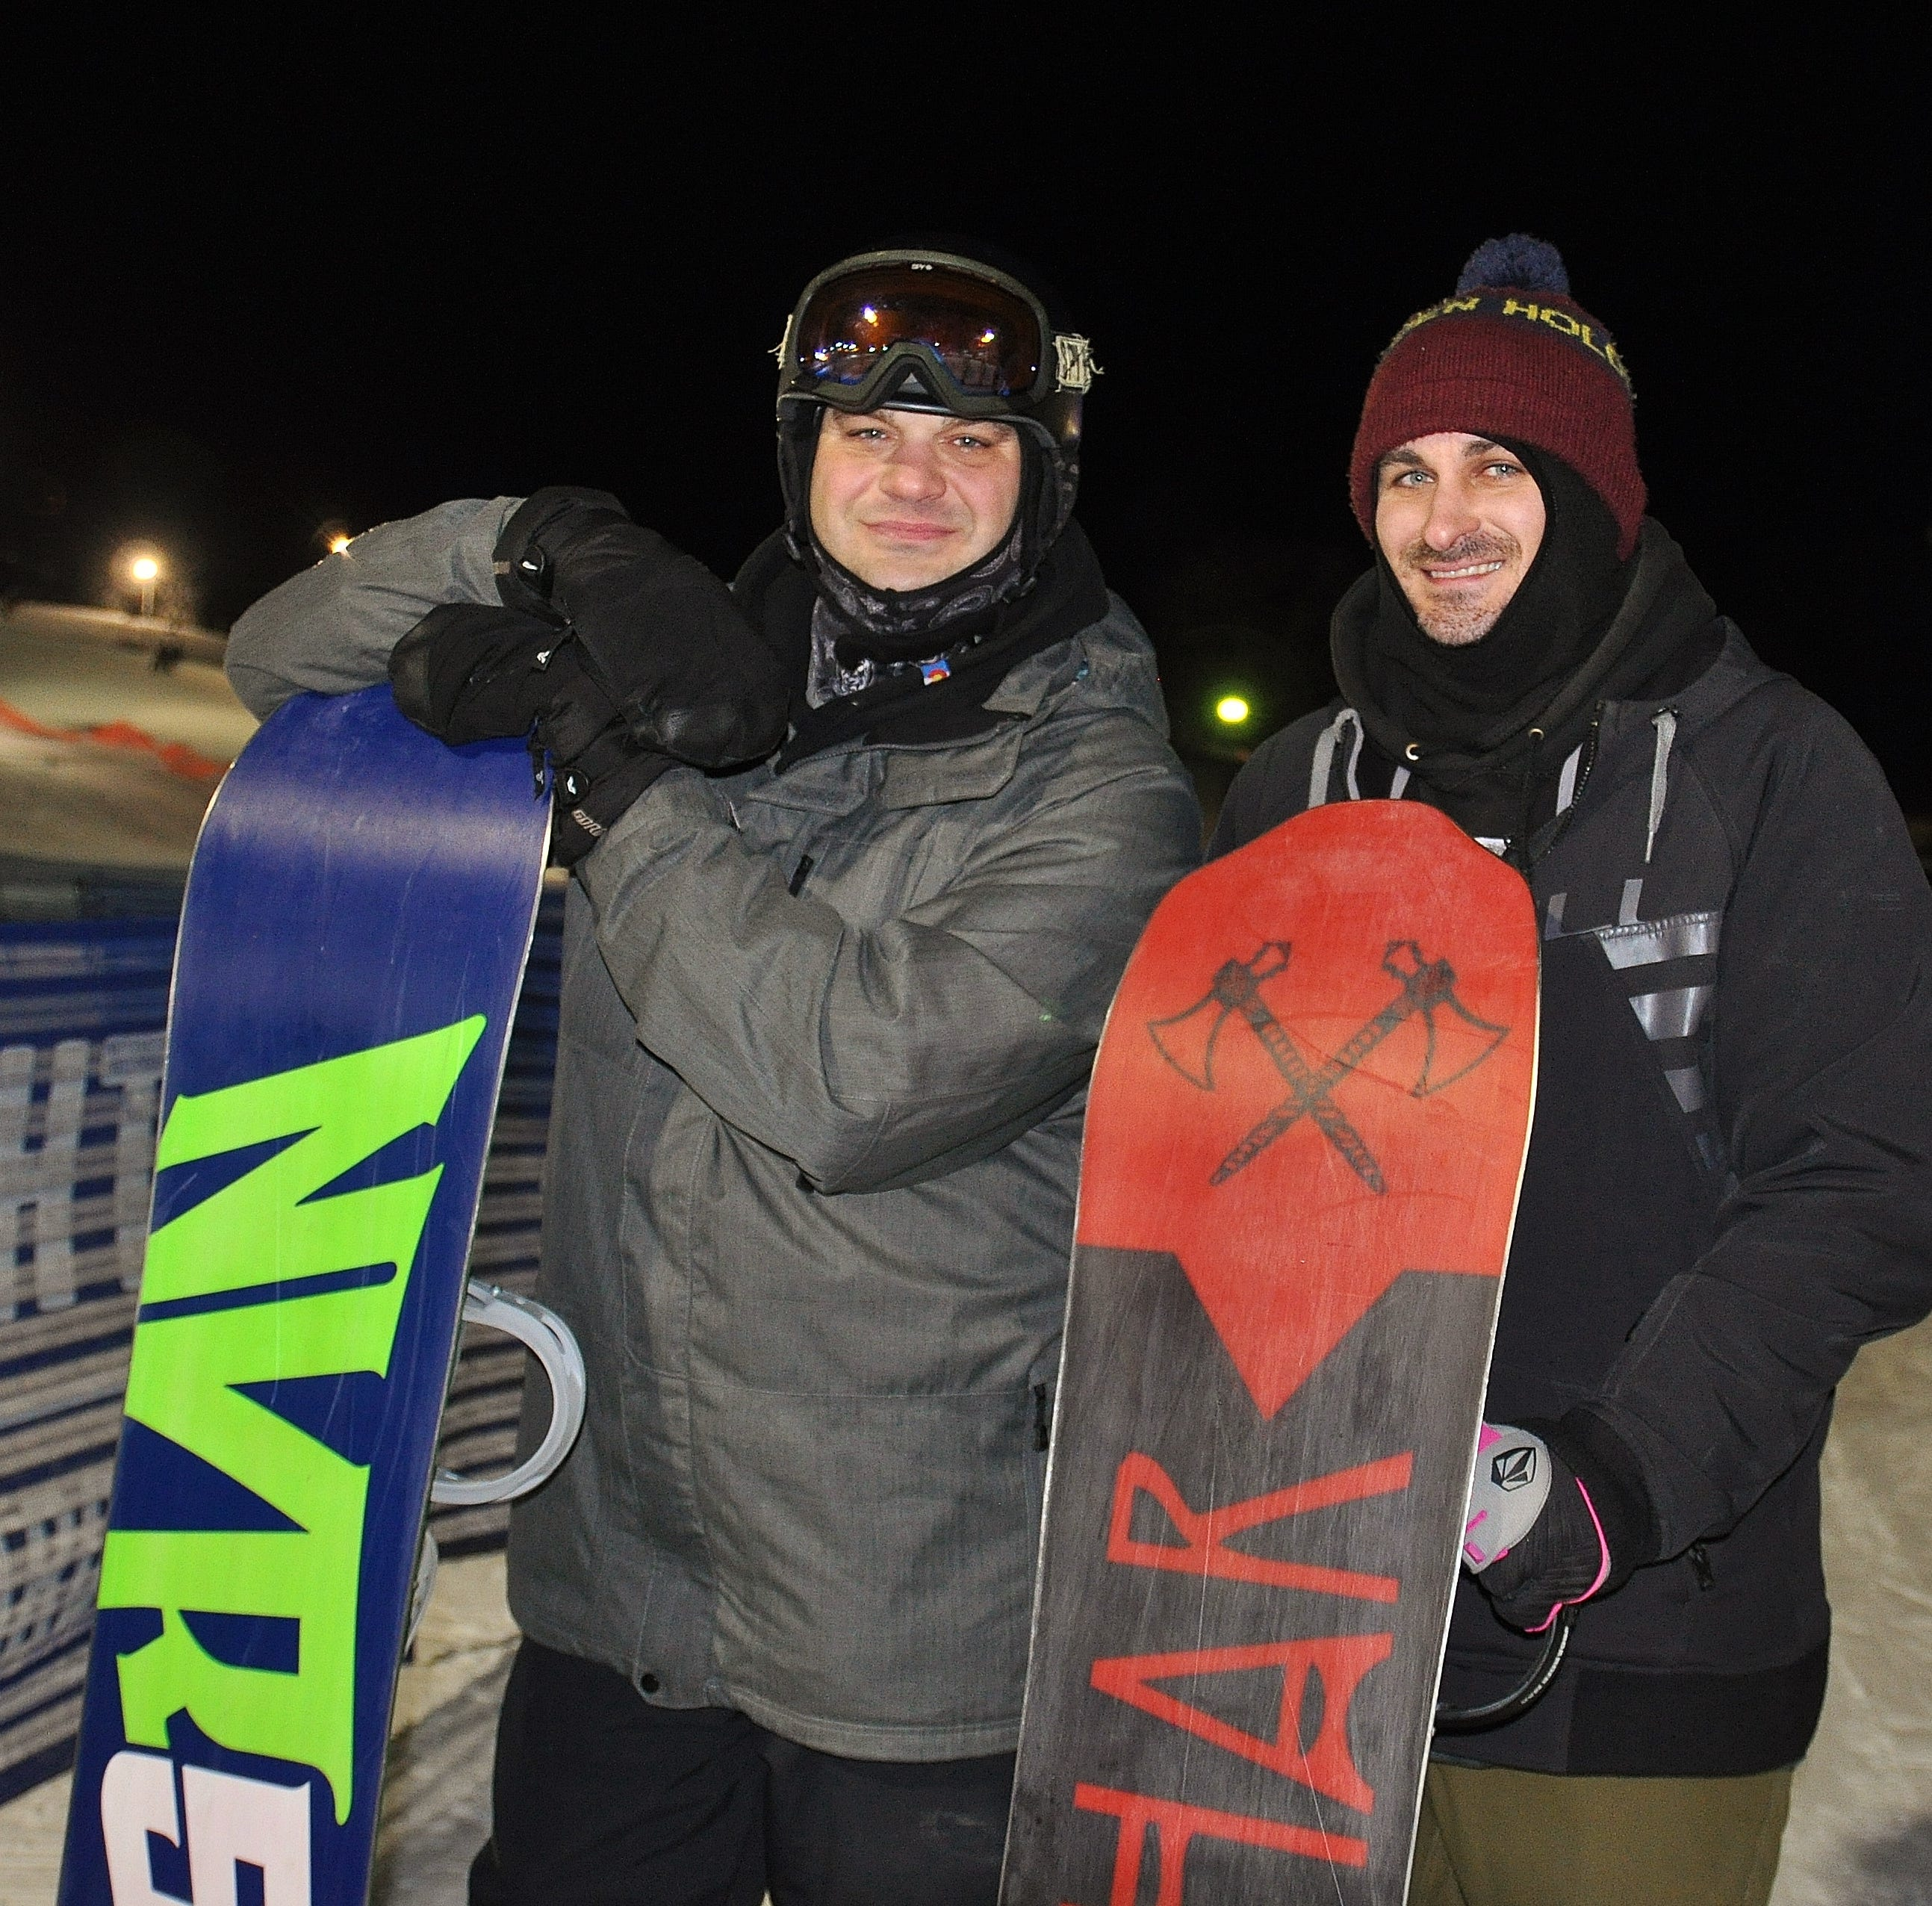 Snowboarders break record with 16th and last stop at Mt. Brighton in snowboarding marathon